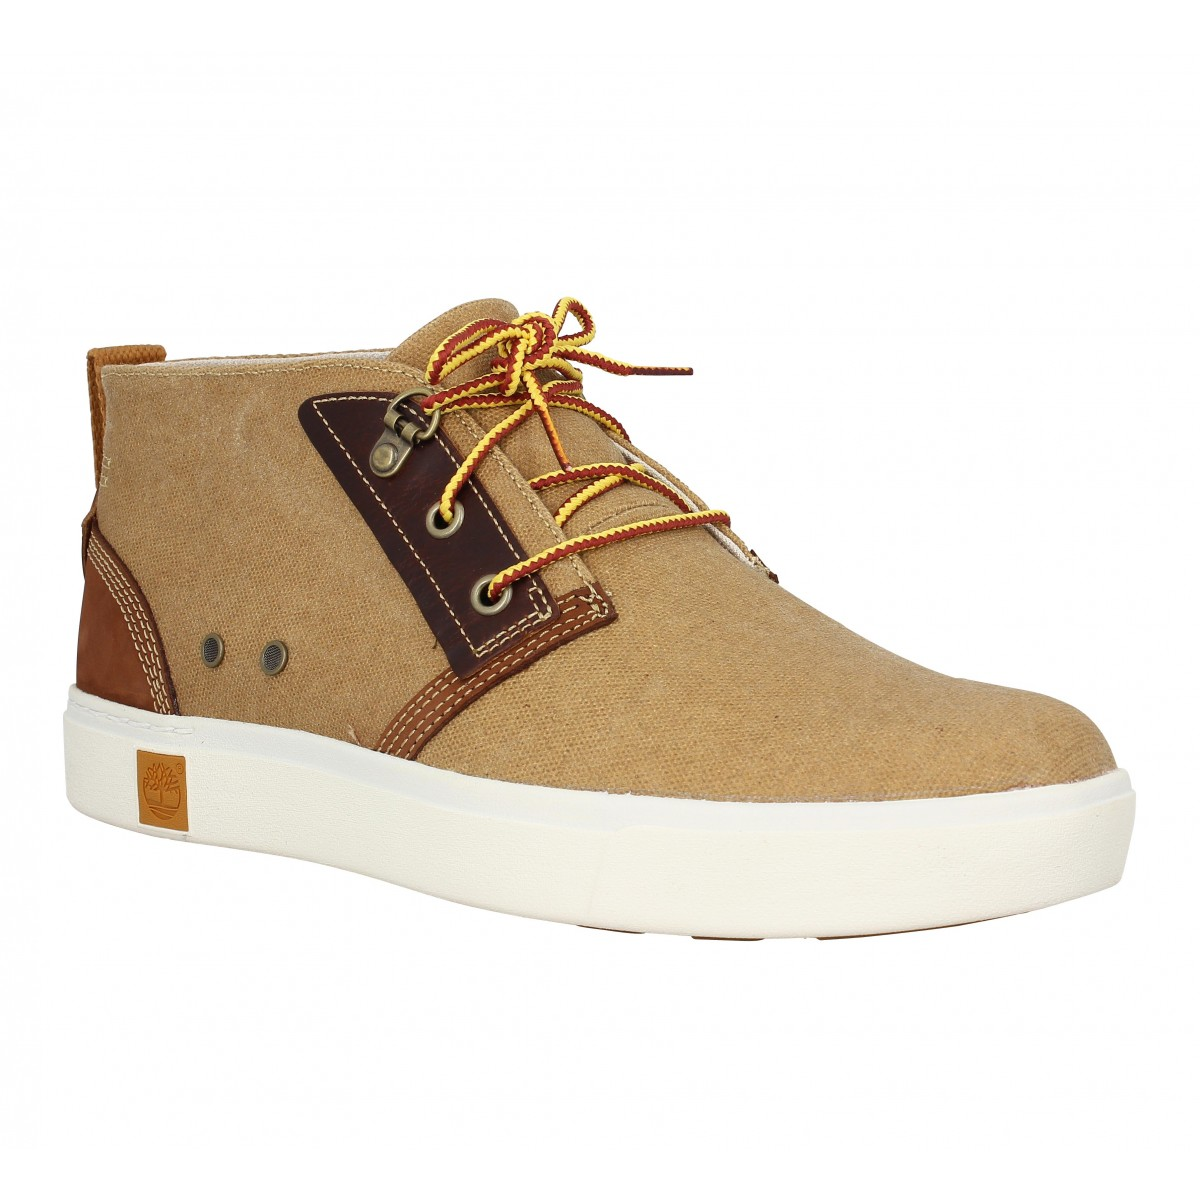 Baskets TIMBERLAND Amherst Chukka toile Homme Ocre